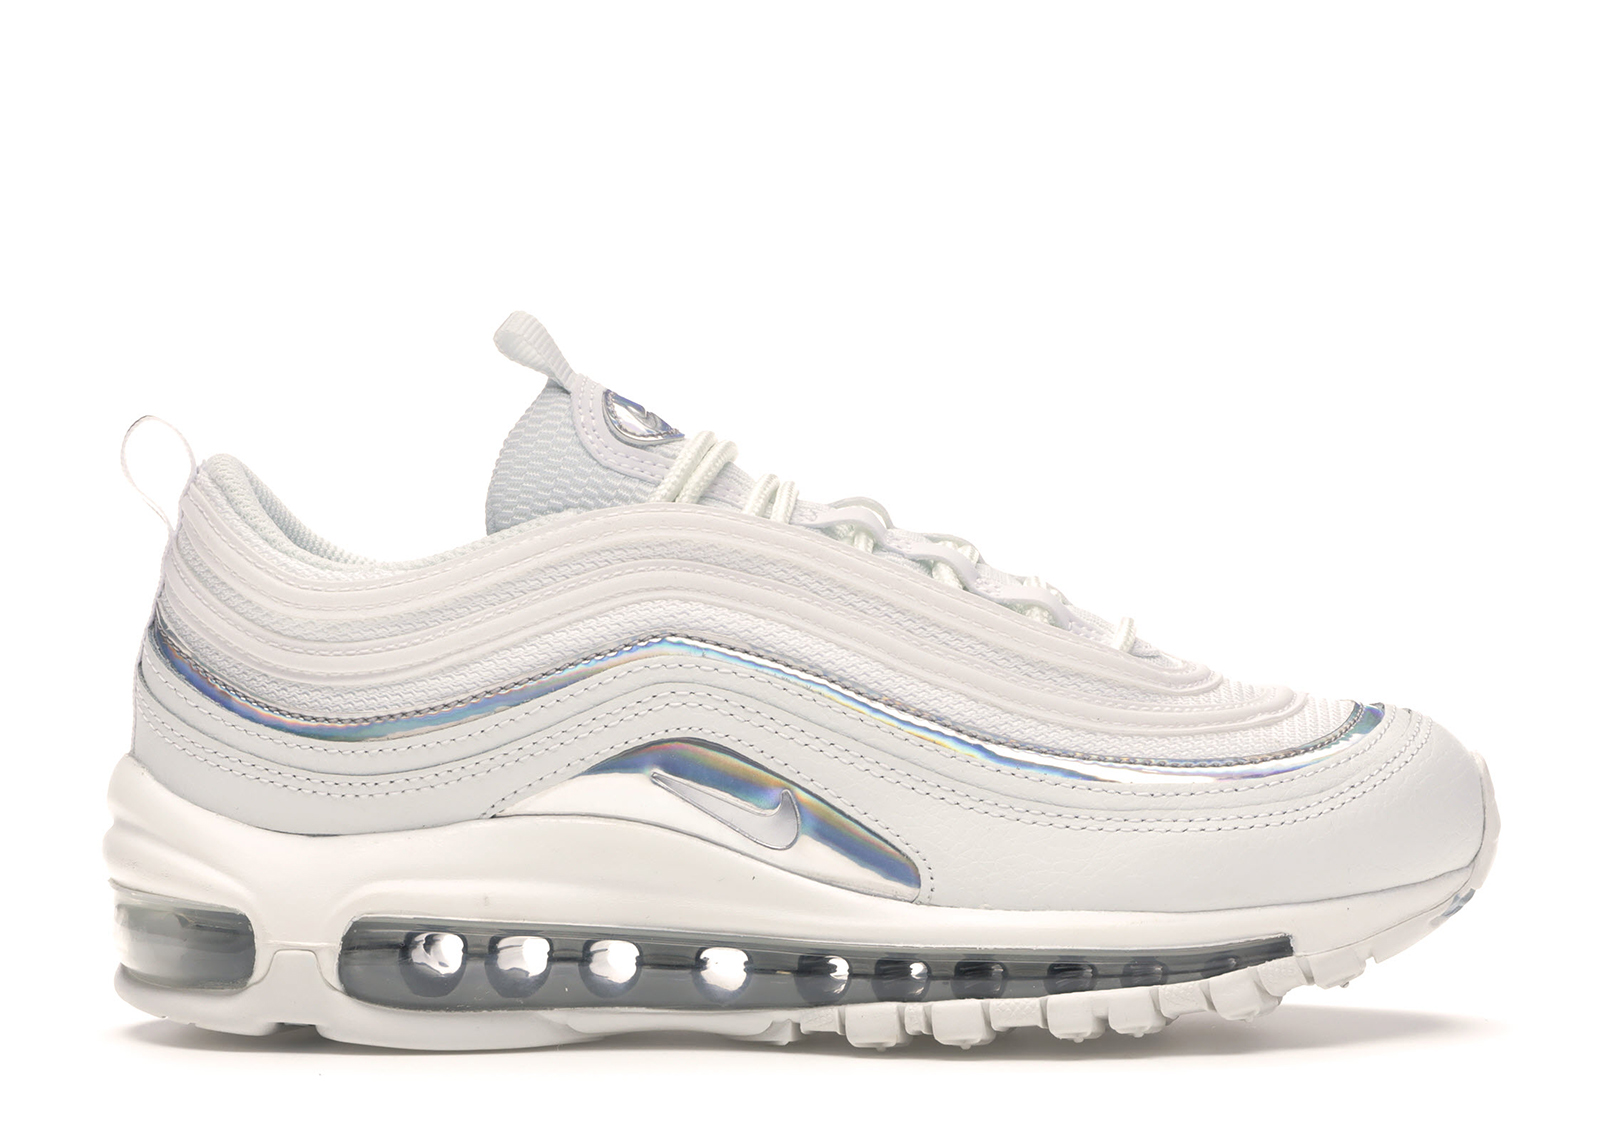 nike air max 97 iridescent trainers in black